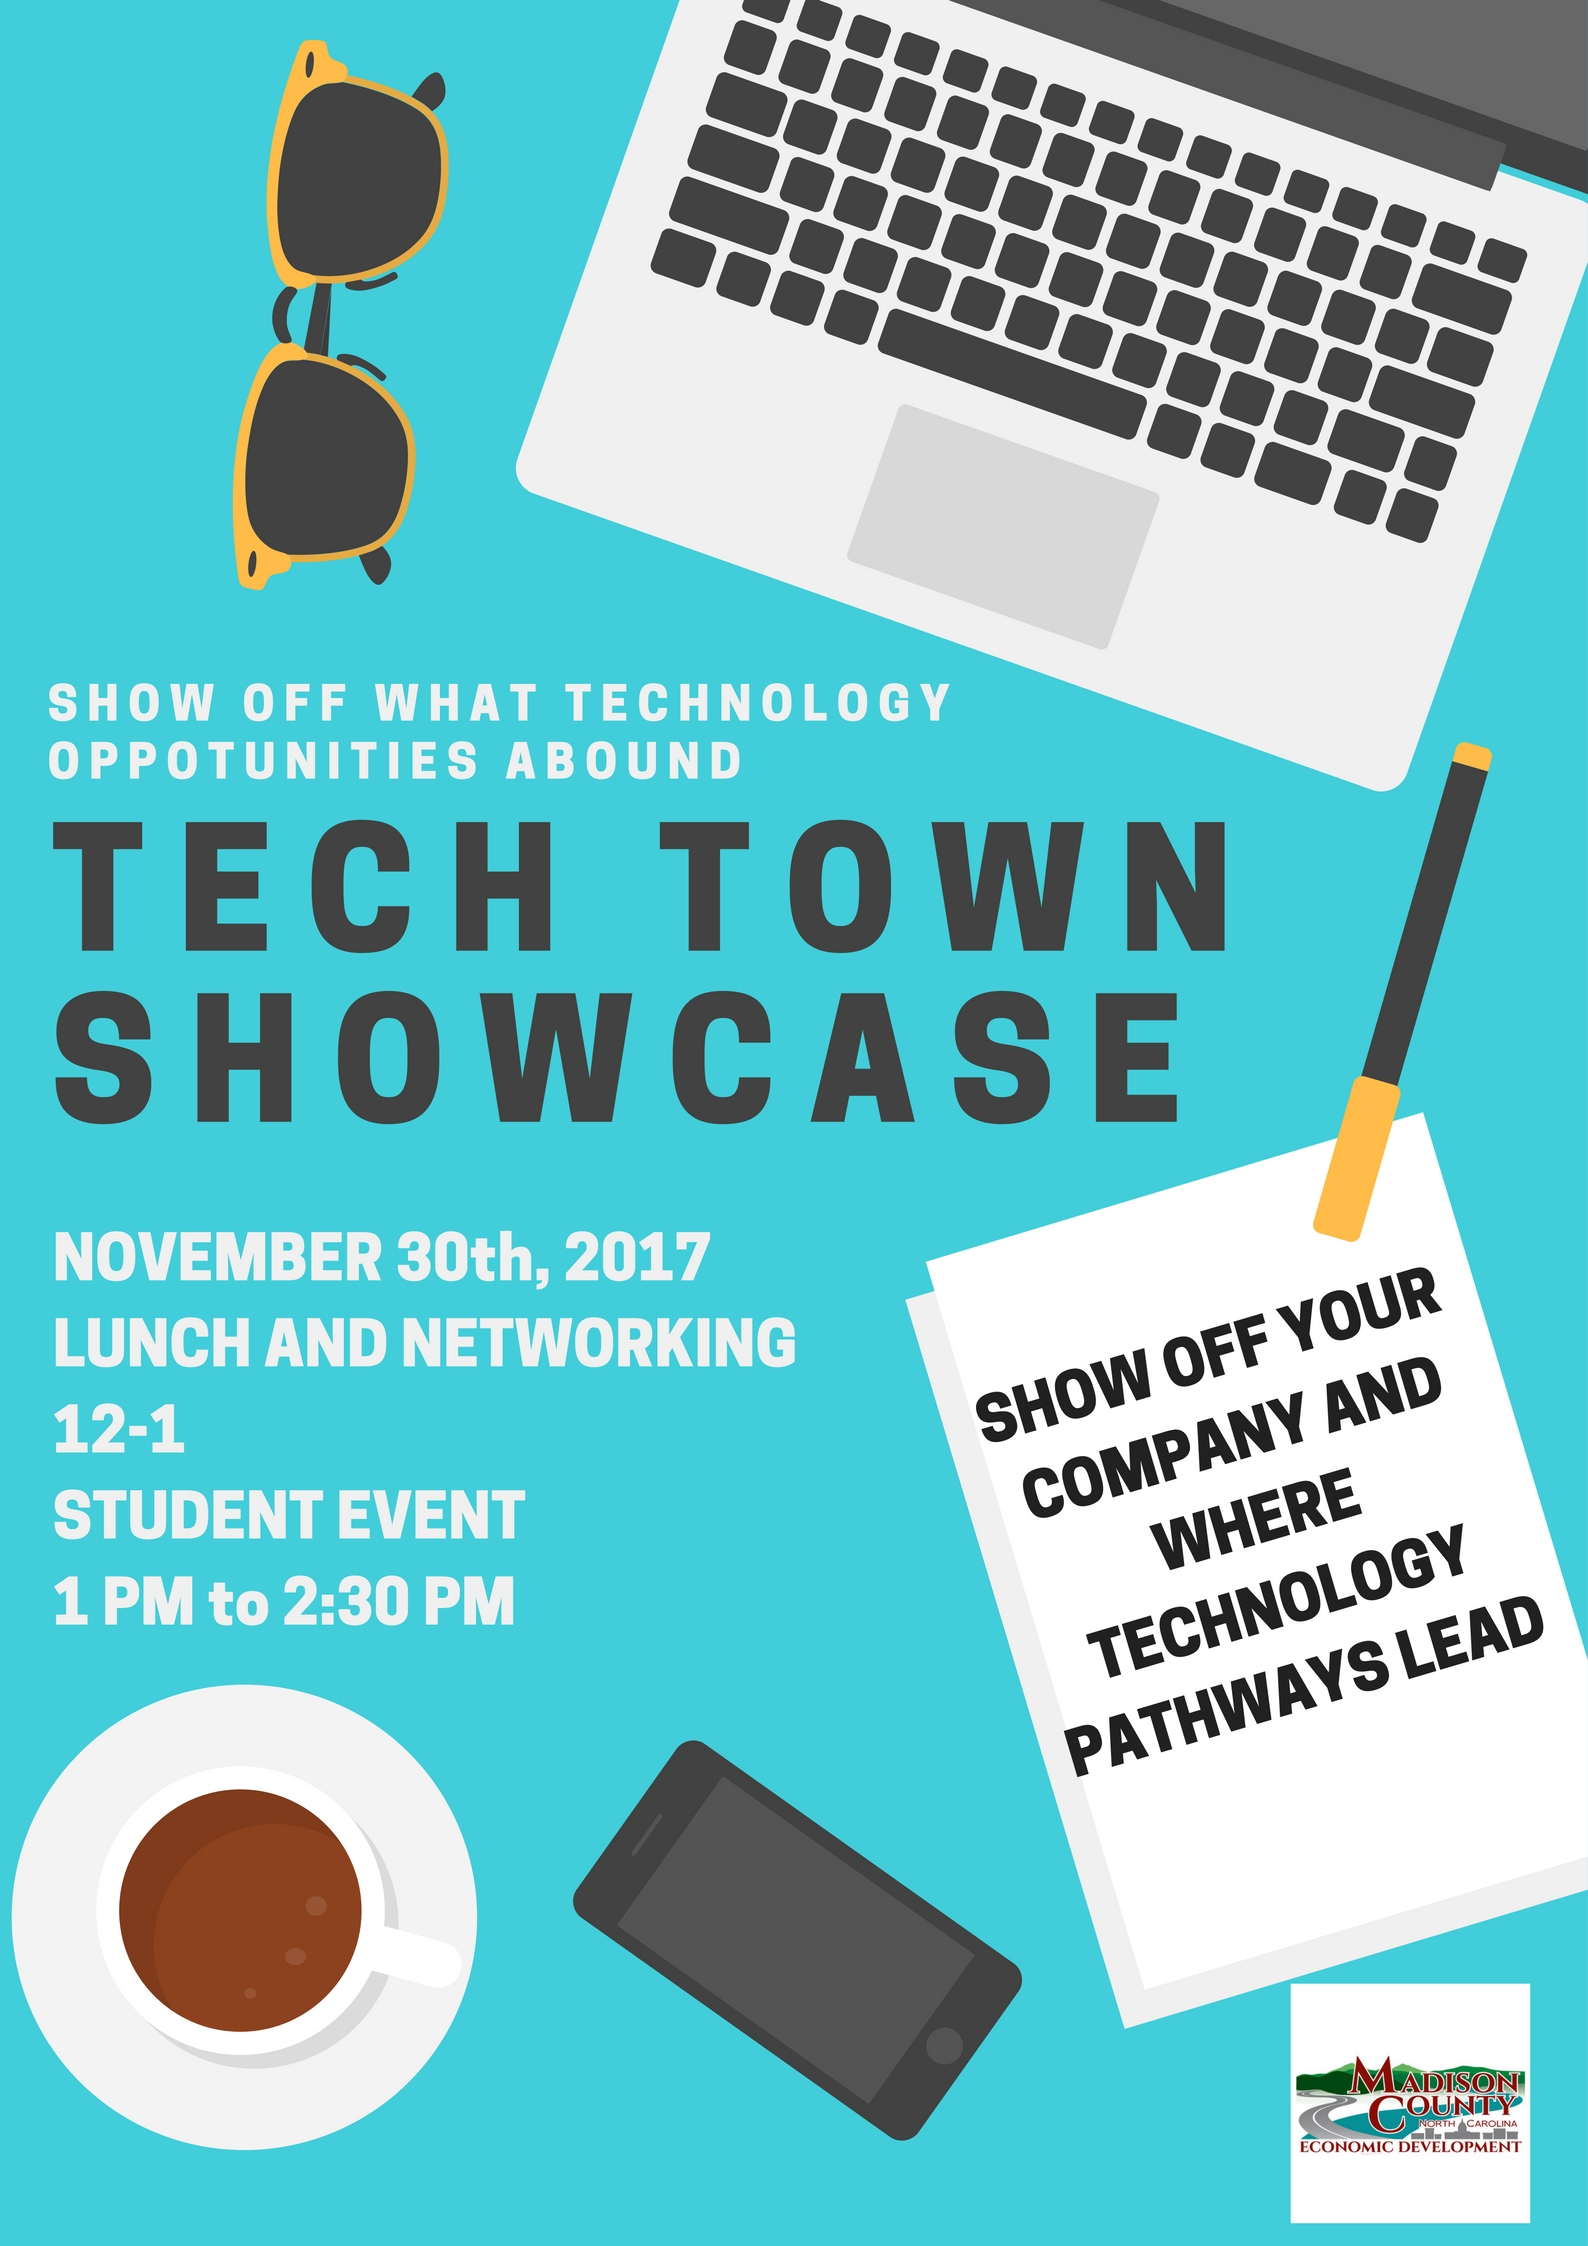 Tech Town Showcase Flyer